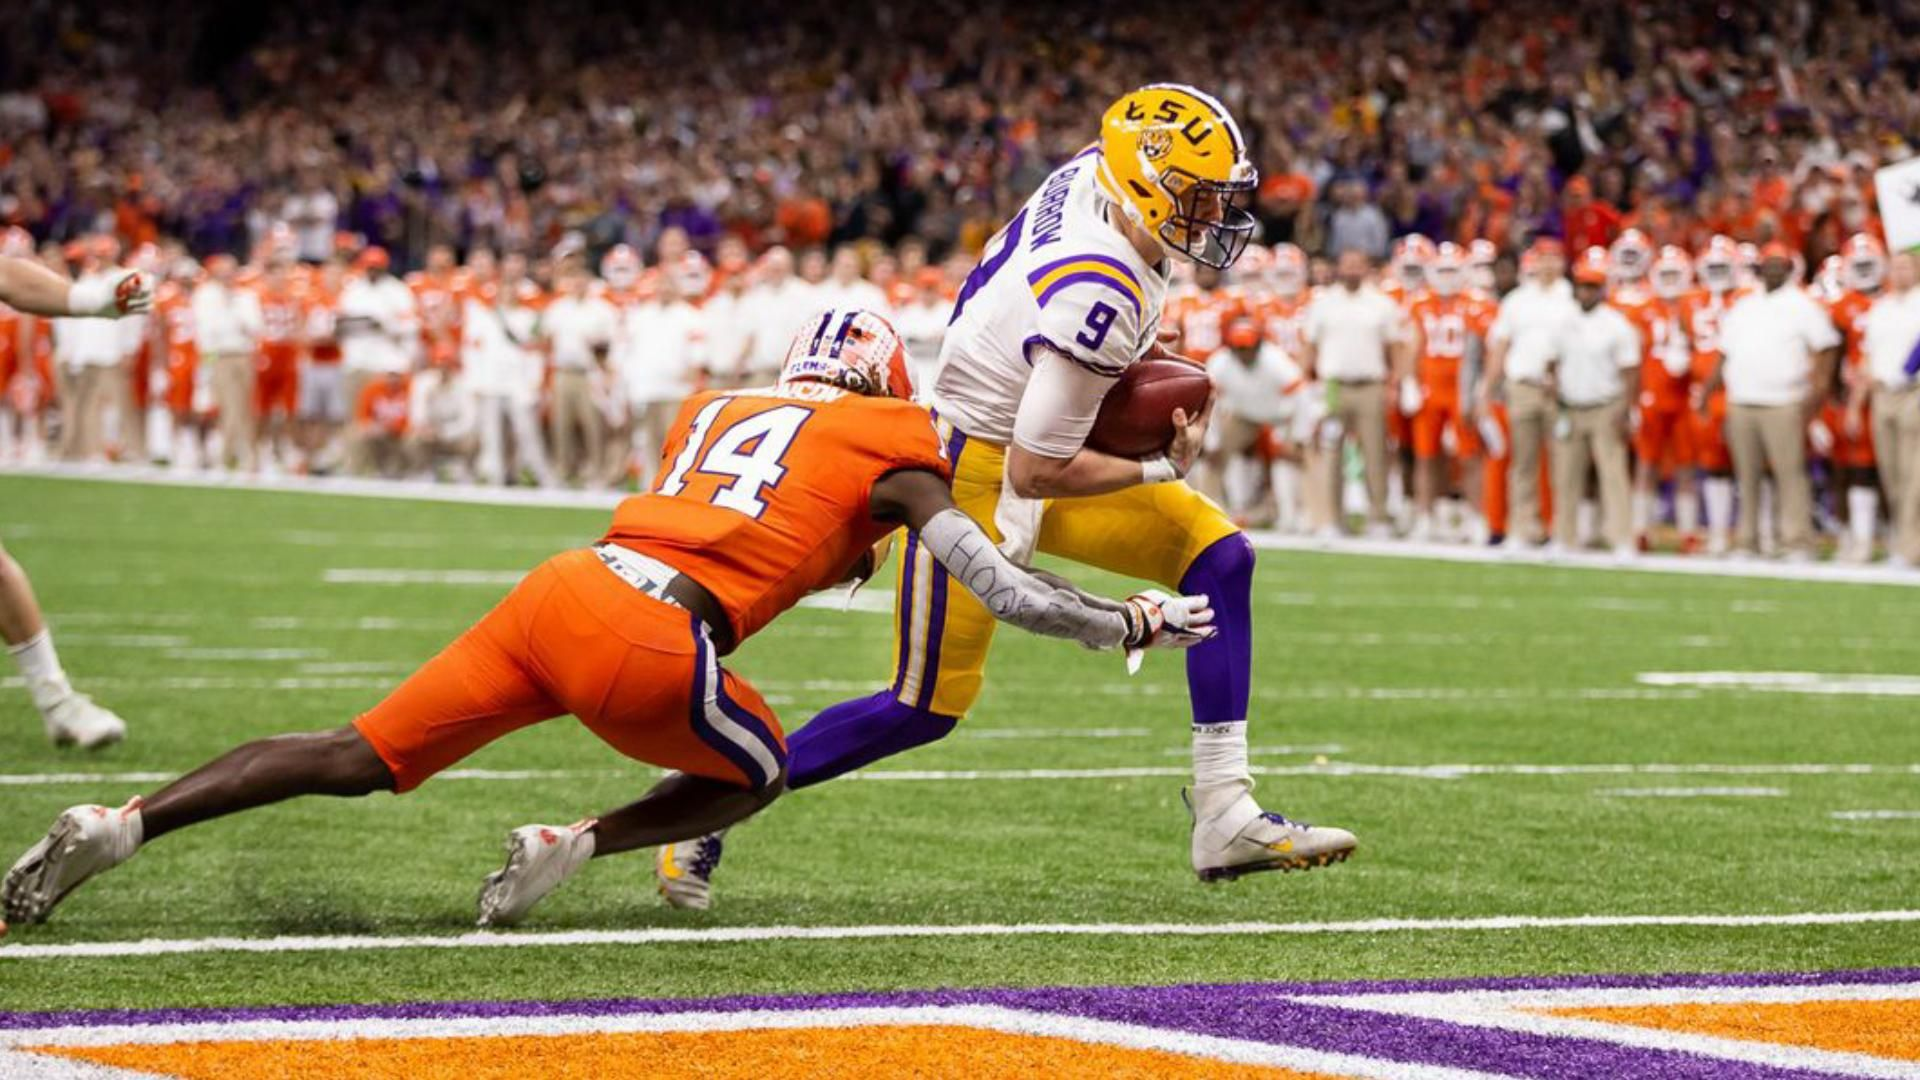 Are The 2019 Lsu Tigers The Best Team In College Football History